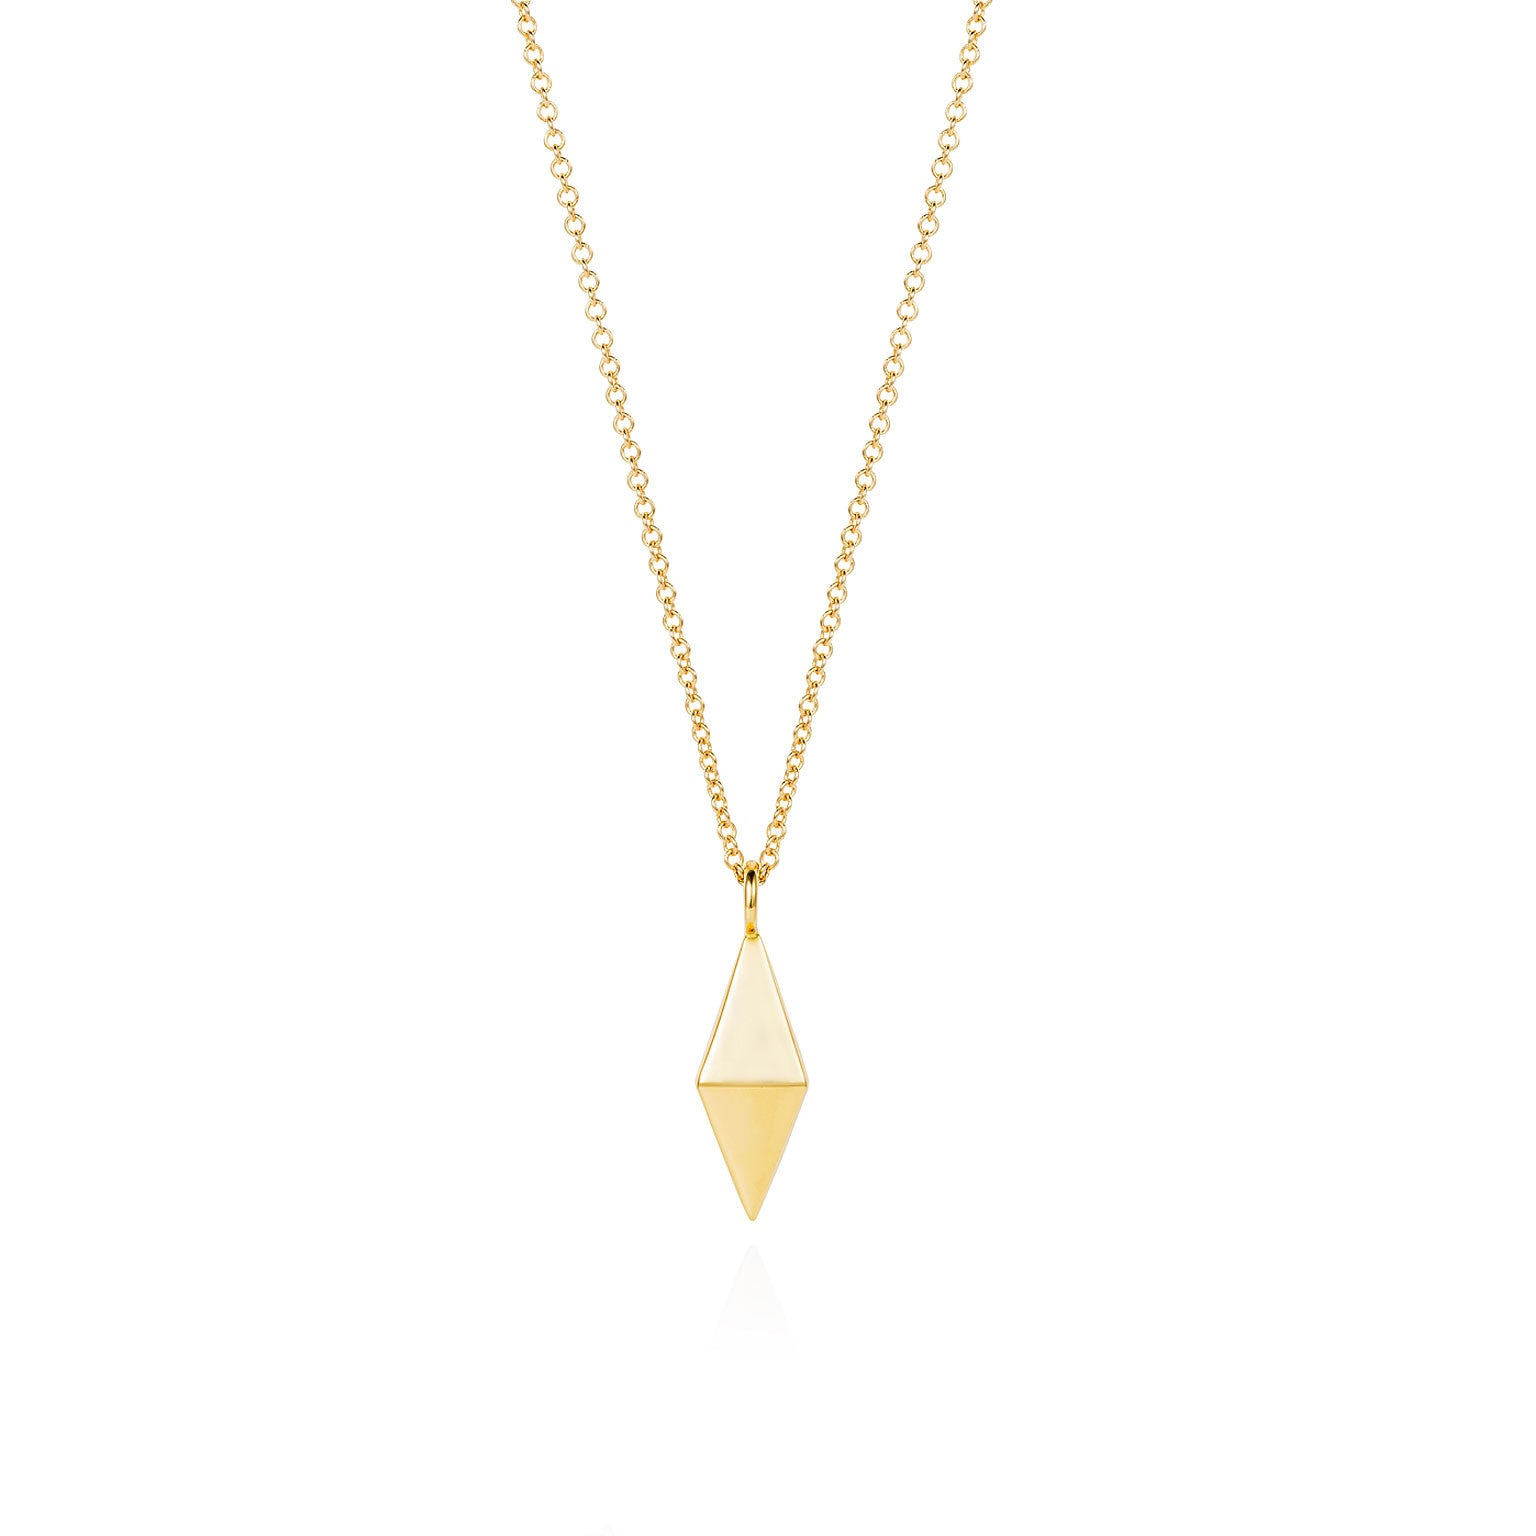 Double pyramid gold necklace crucible london double pyramid gold necklace mozeypictures Image collections